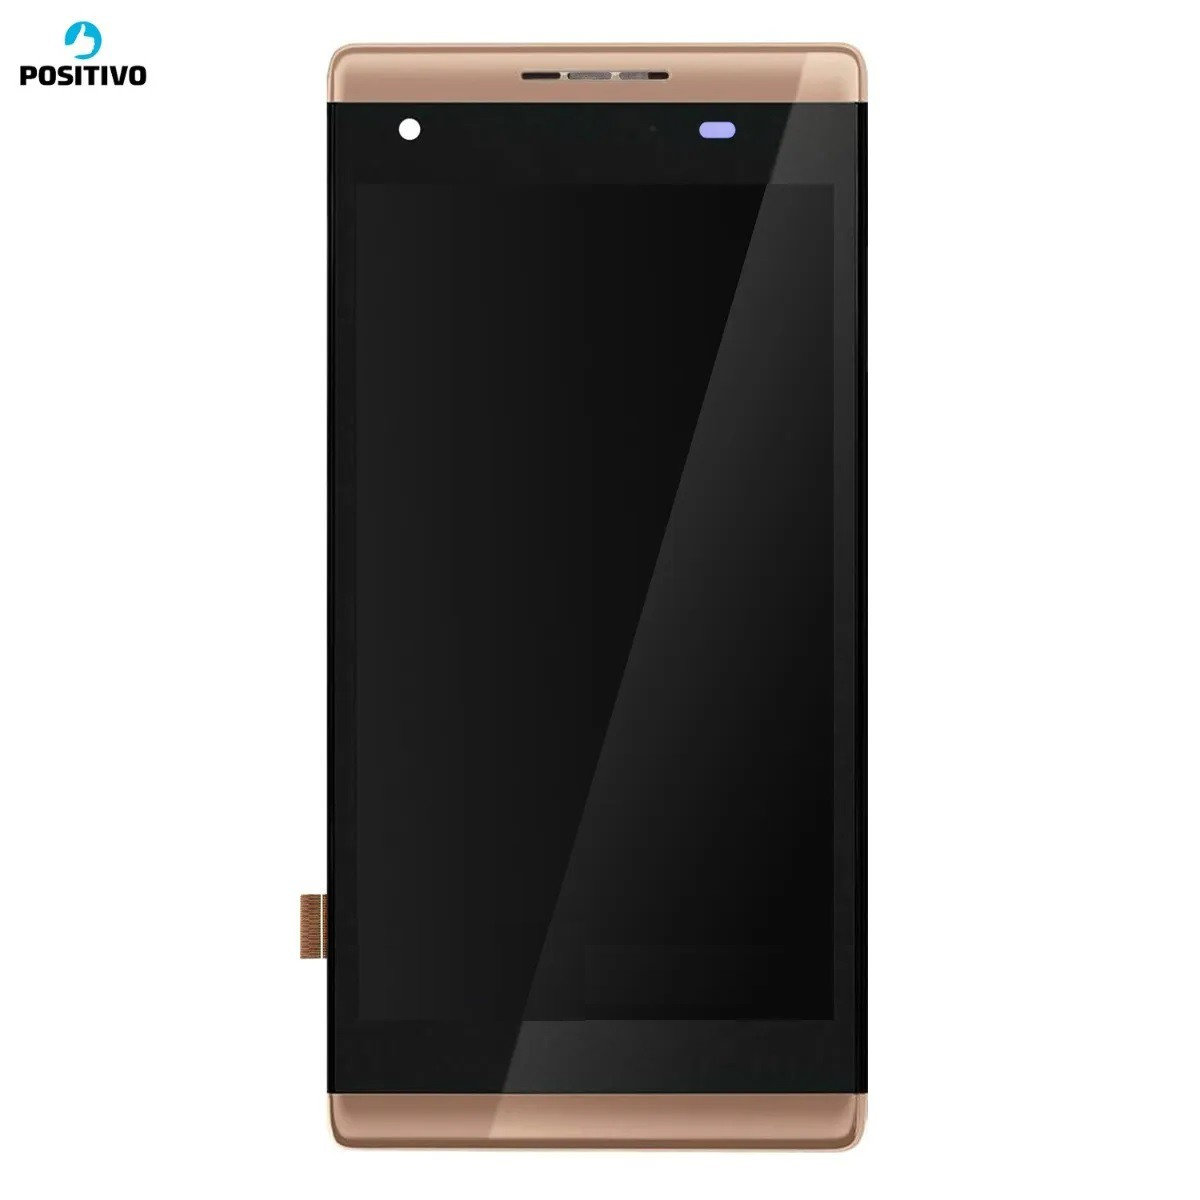 Display Lcd Touch Celular Positivo Selfie S455 Frontal com aro Chassi 4.5 Pol.